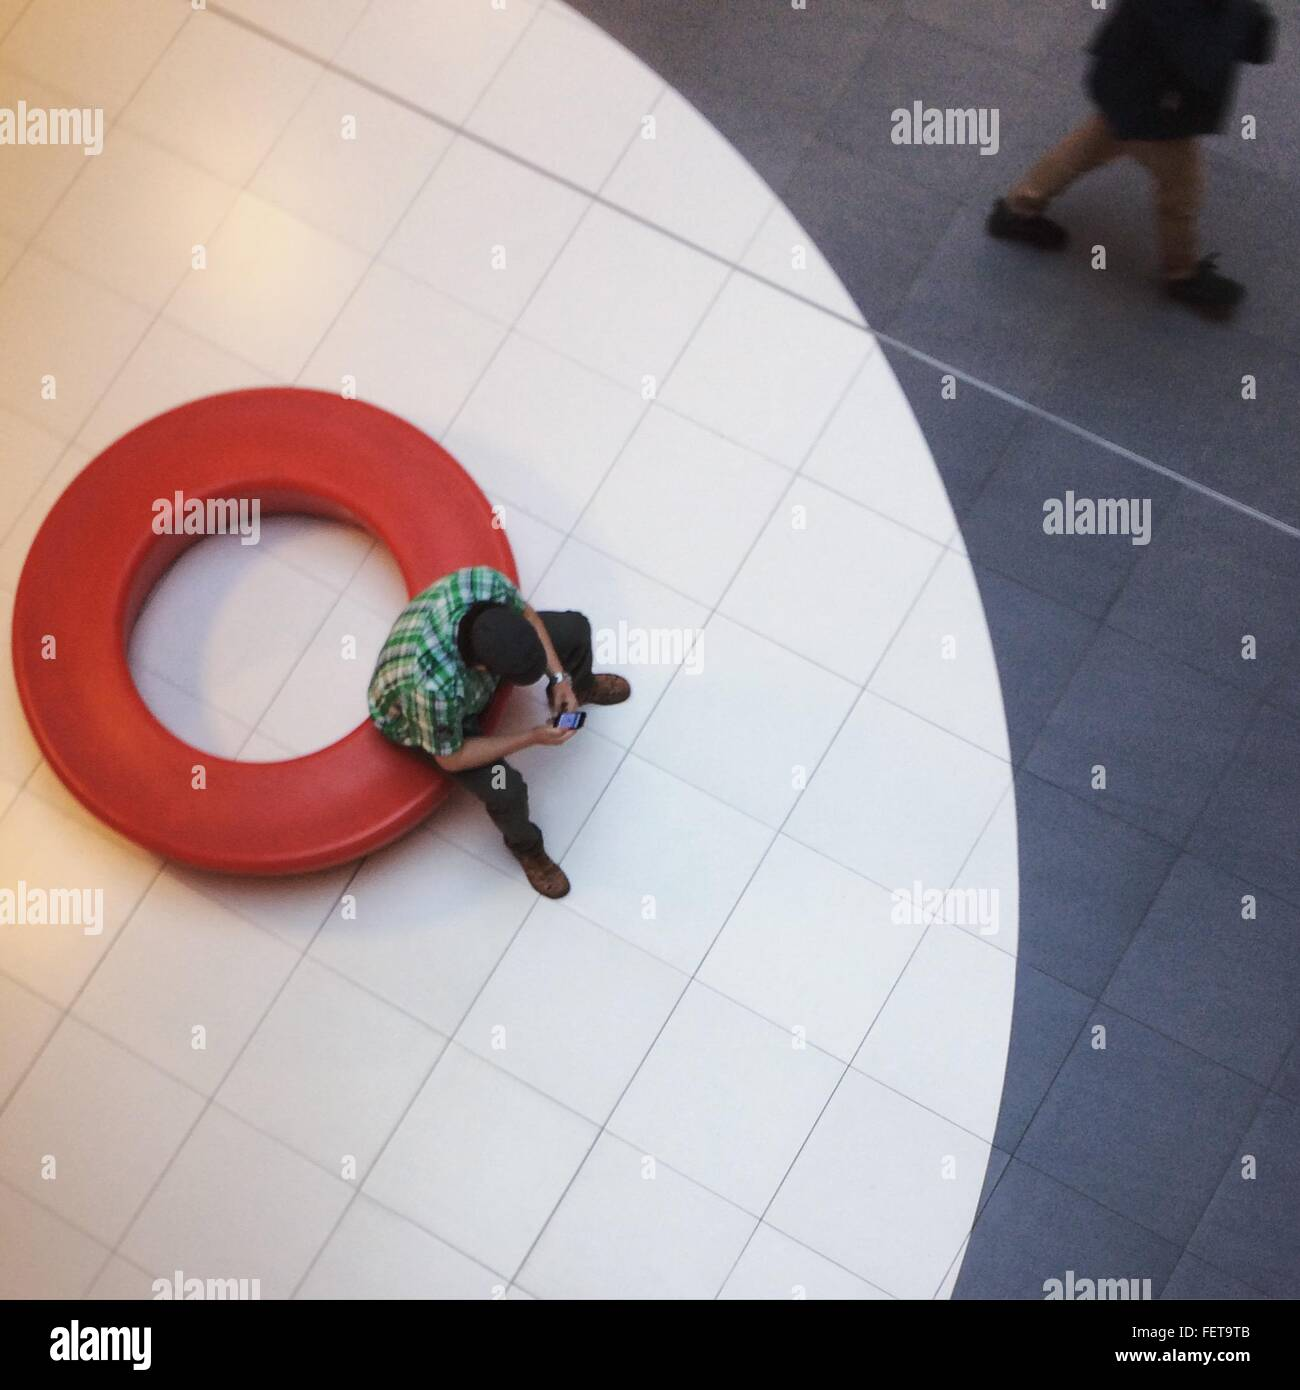 High Angle View Of Man Using Mobile Phone In Lobby Photo Stock